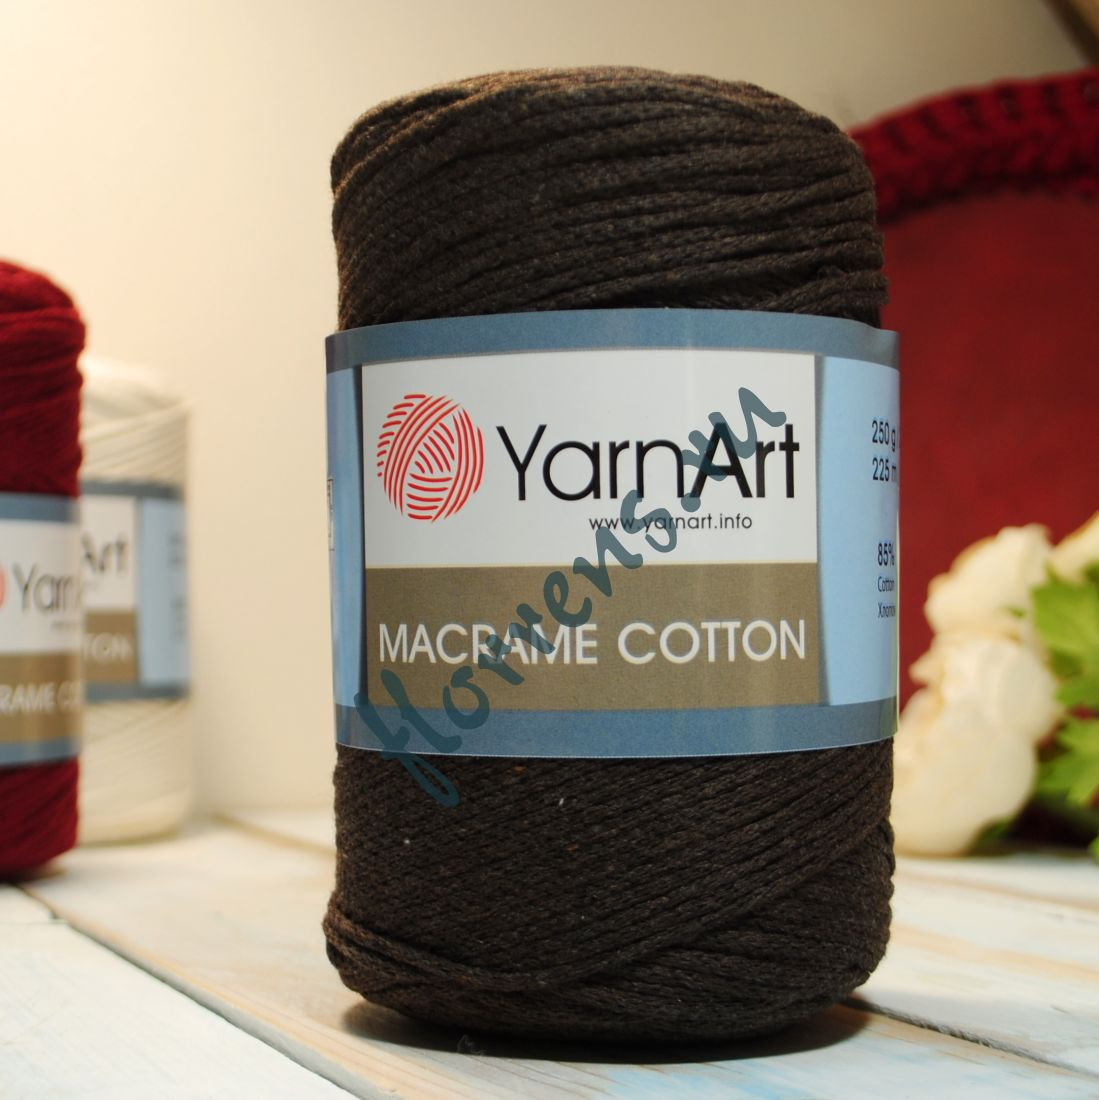 Пряжа Yarnart Macrame cotton / 775 горький шоколад